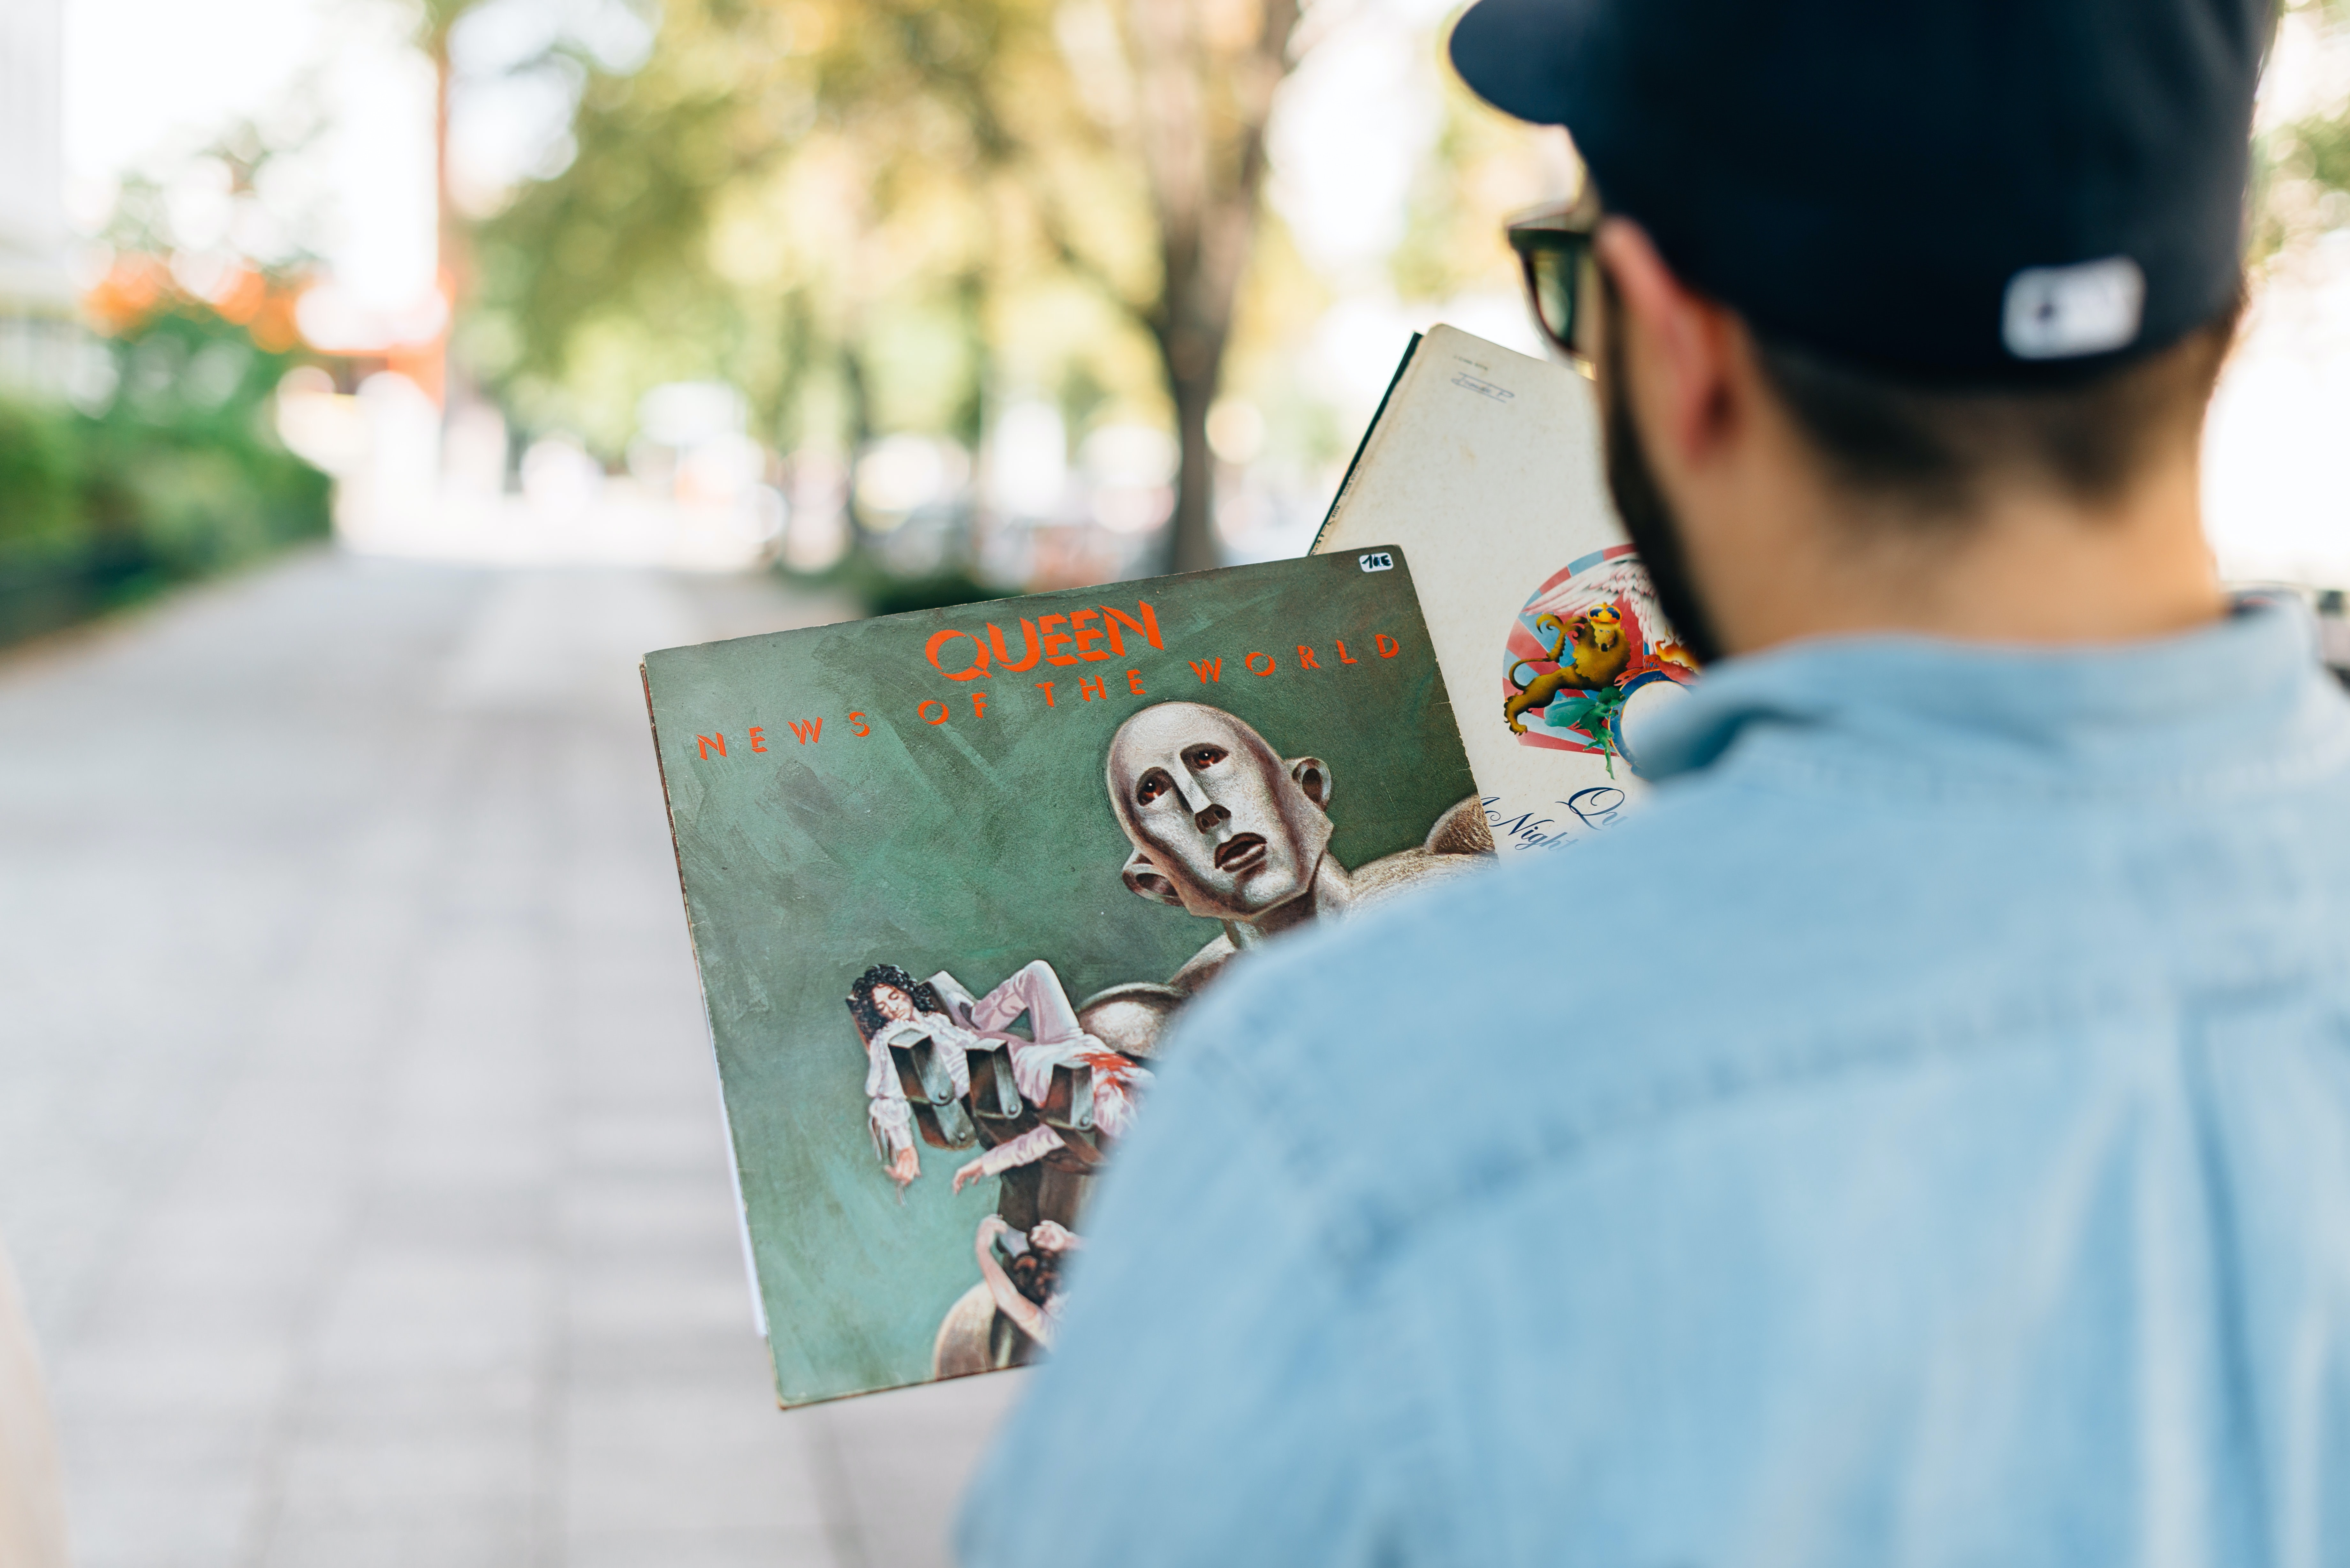 A view over the back of a man holding two Queen records